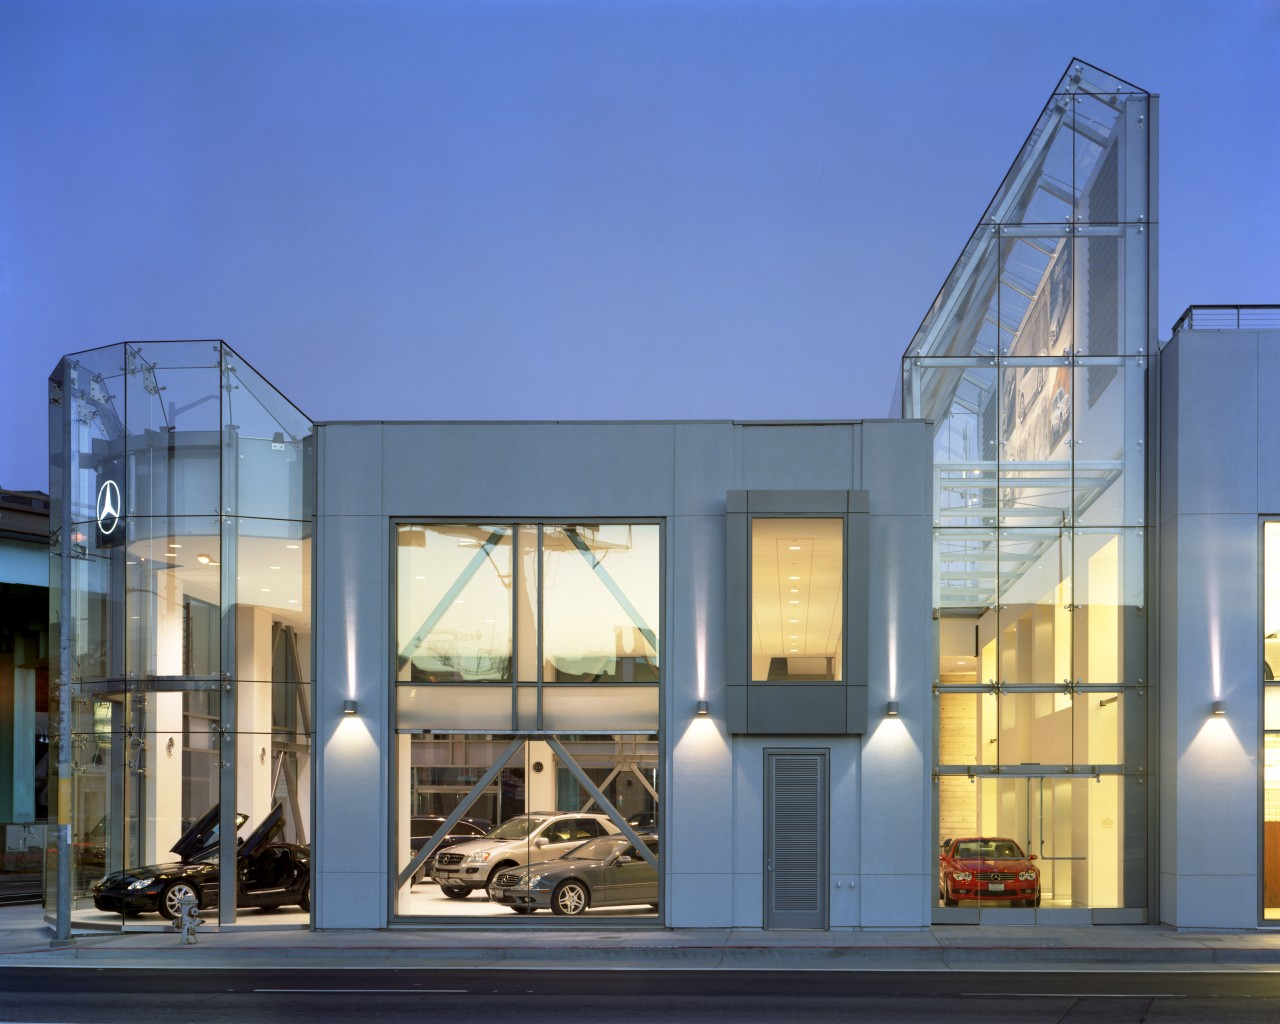 The new Mercedes-Benz San Francisco showroom and service architecture, building, commercial building, corporate headquarters, facade, home, mixed use, blue